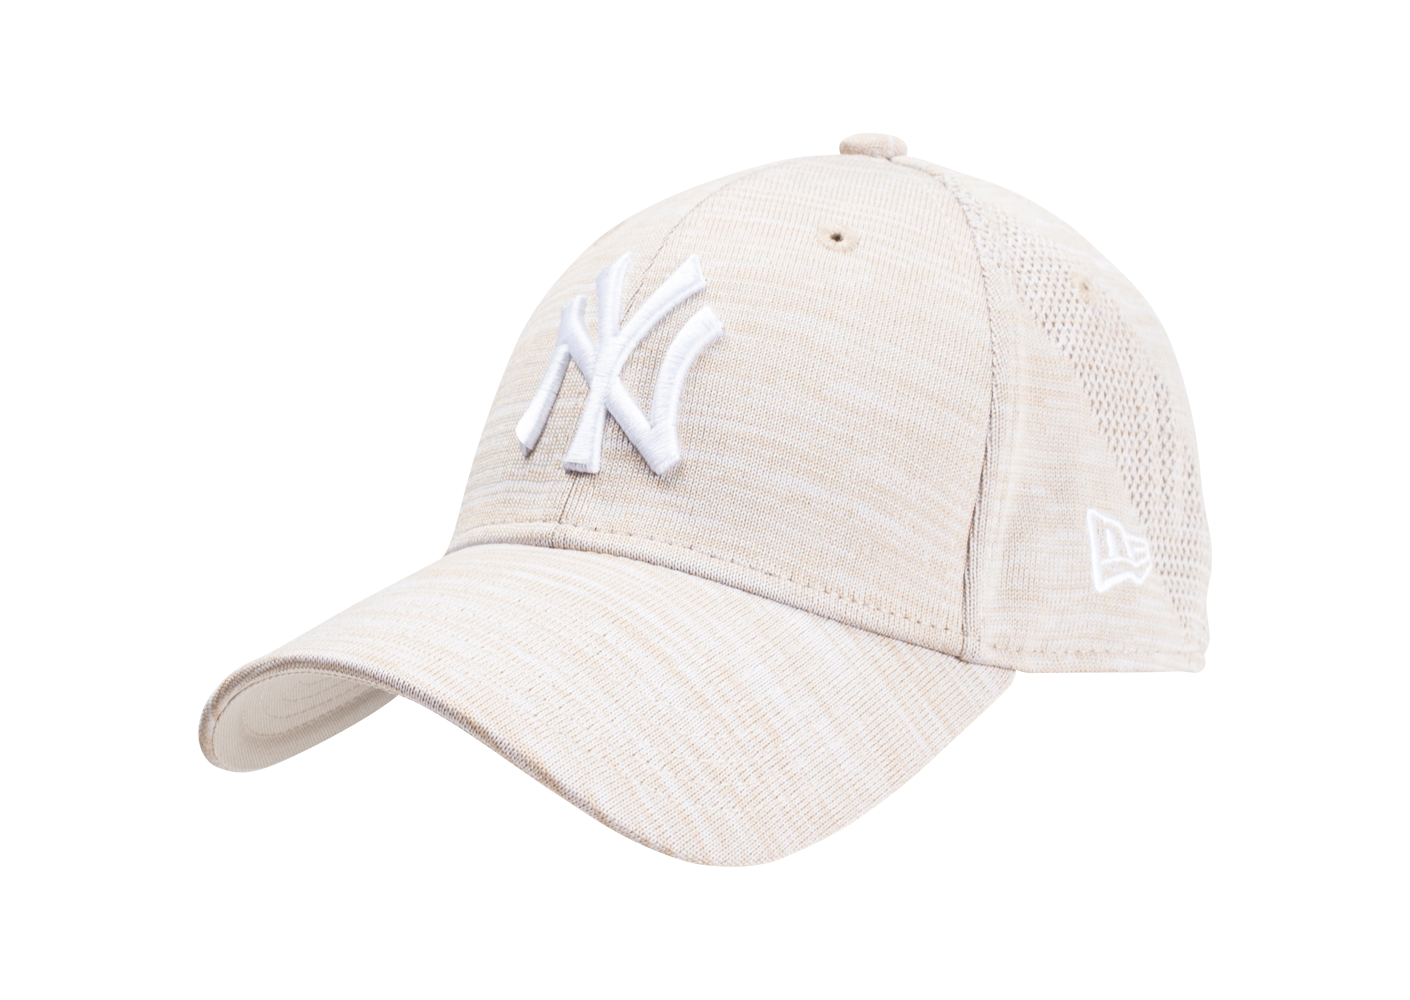 New Era Homme Casquette 9/40 Engineered Fit Beige